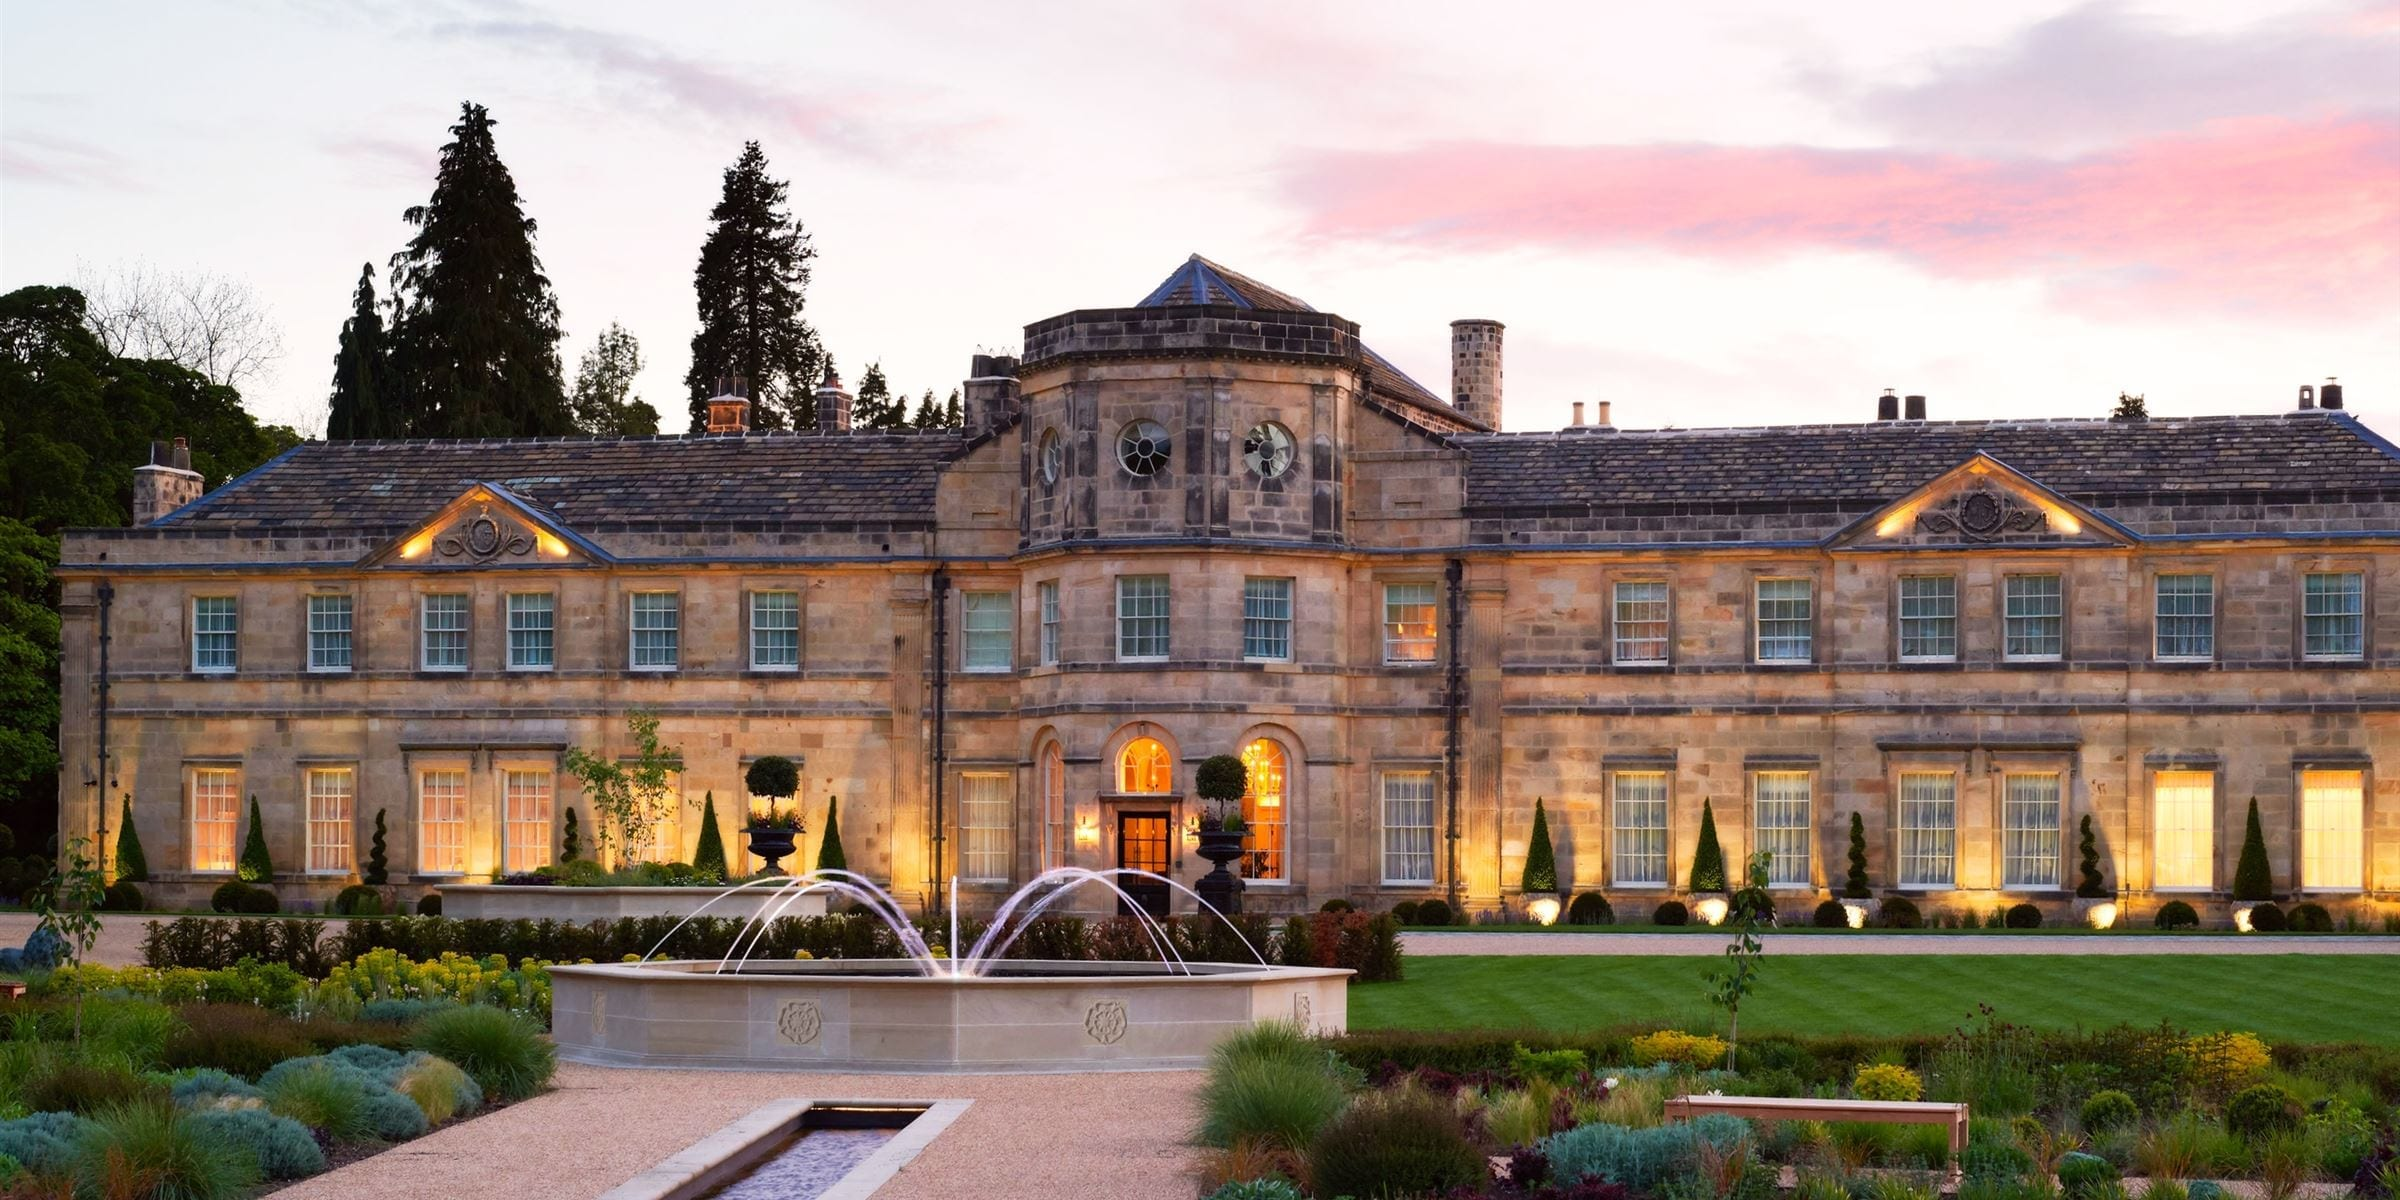 Exterior of Grantley Hall in Yorkshire